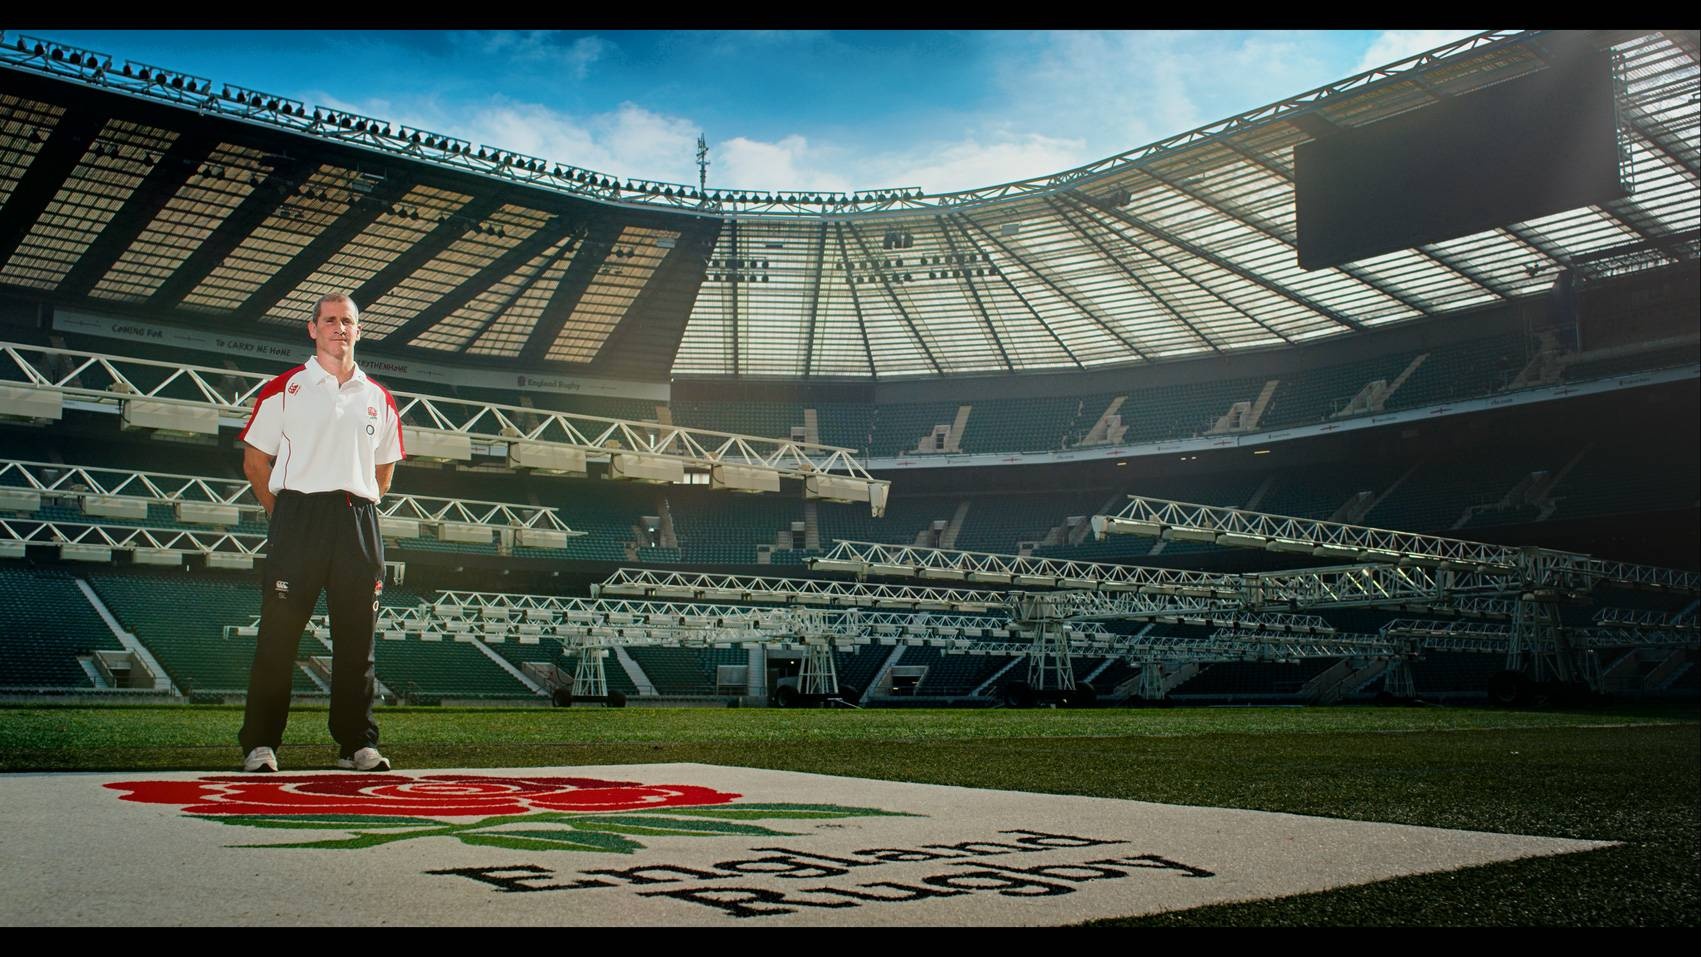 Rugby World Cup TV ad still of Stuart Lancaster on the pitch at Twickenham